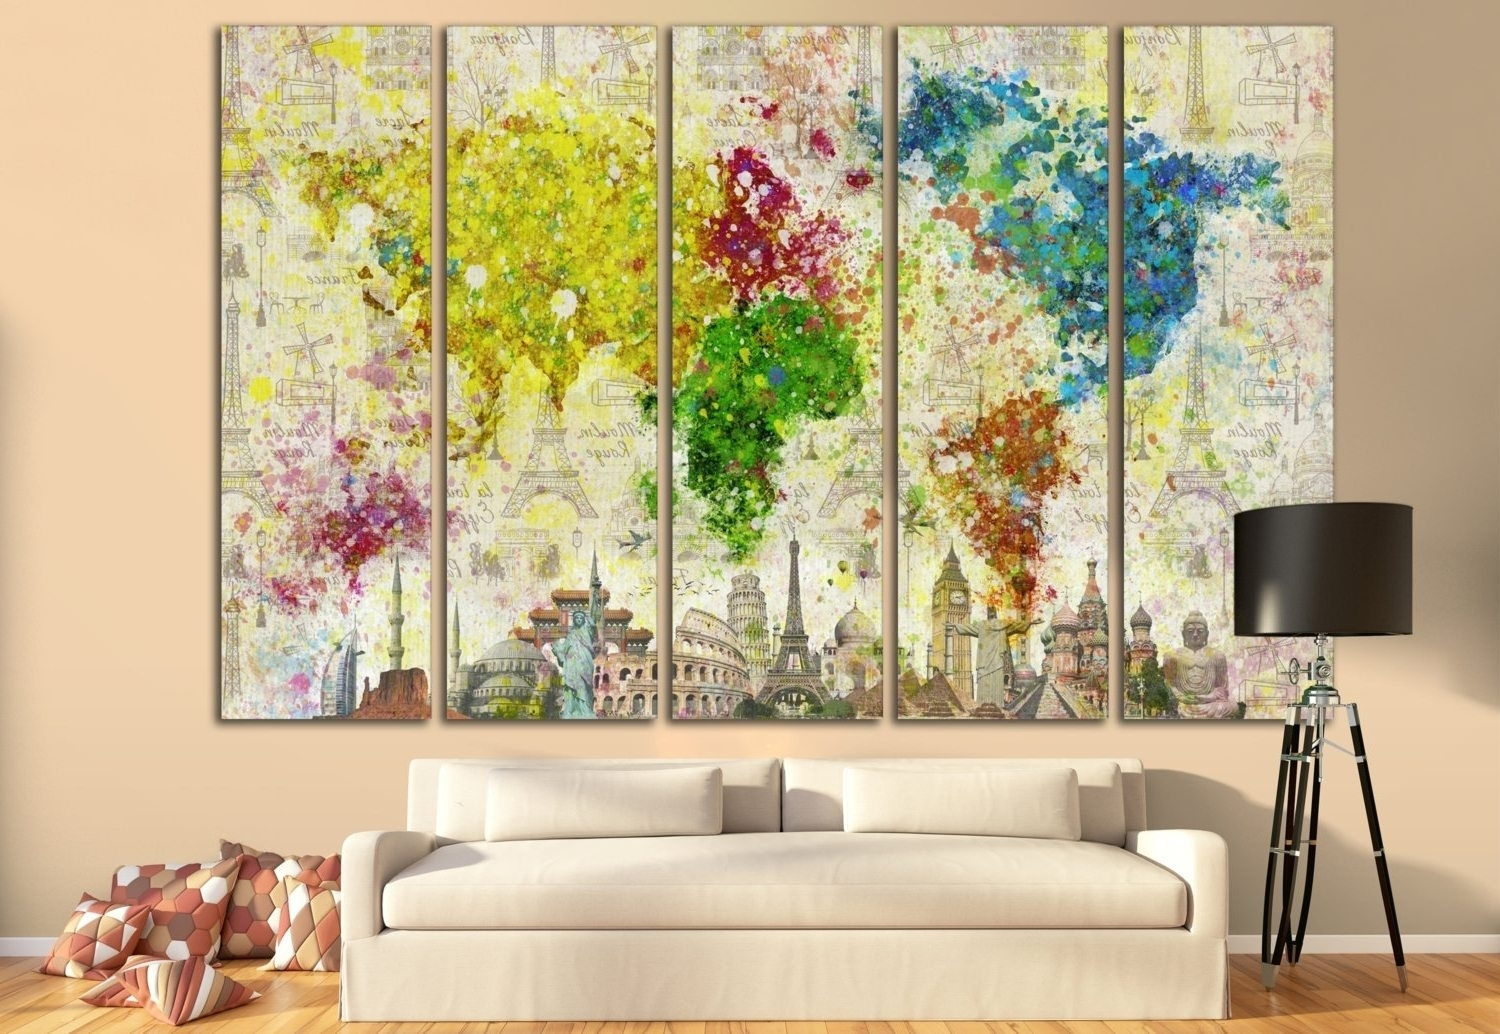 Wall Art: Astonishing Horizontal Wall Art Tall Narrow Wall Art With Most Up To Date Gordmans Canvas Wall Art (View 15 of 15)